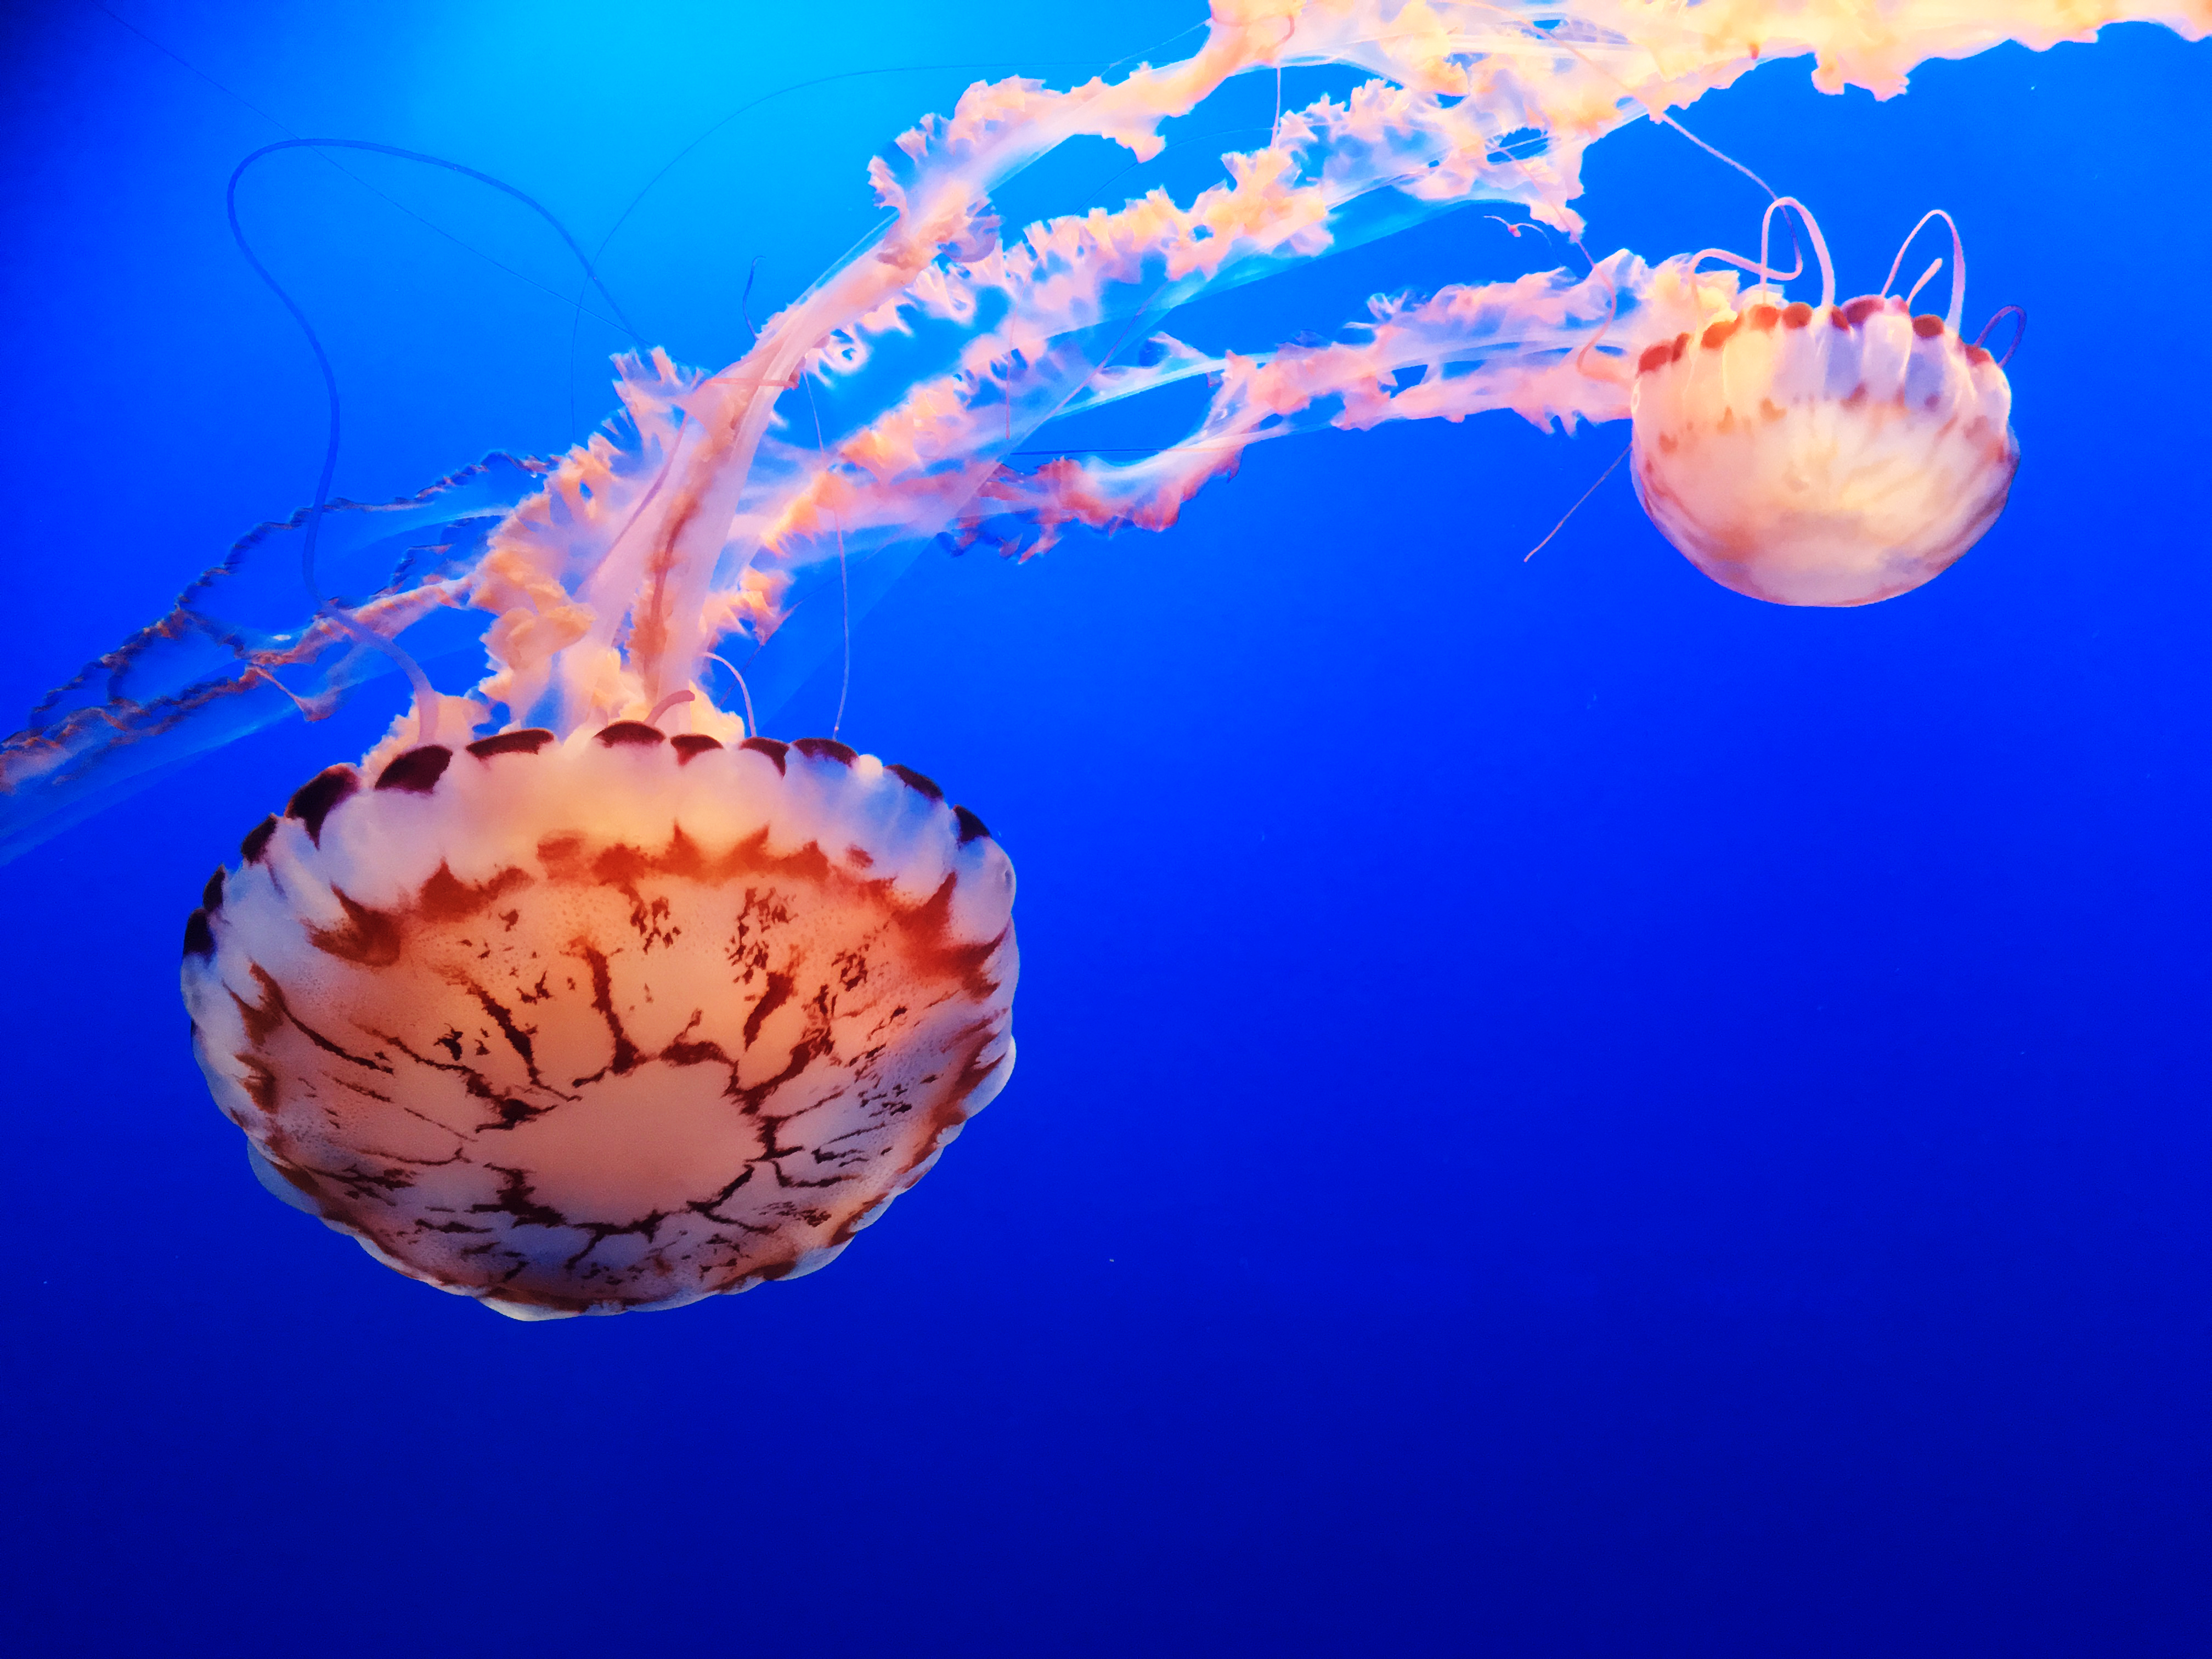 jellyfish_4_by_yellowicous_stock-db0li2g